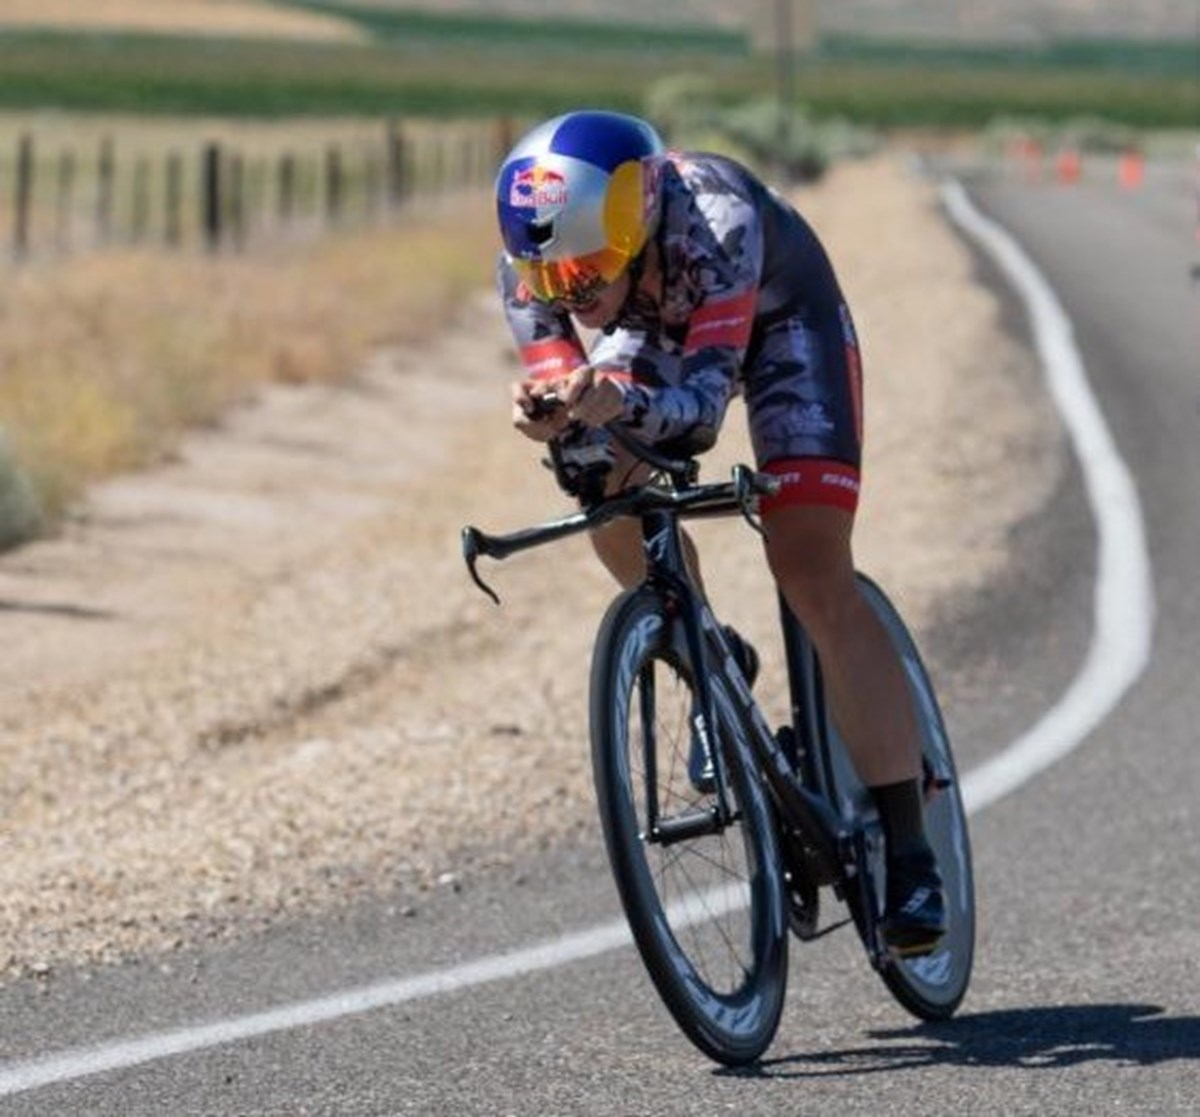 Chloe Dygert Owen on the road at the Chrono Kristen Armstrong - photo by Snowy Mountain Photography.